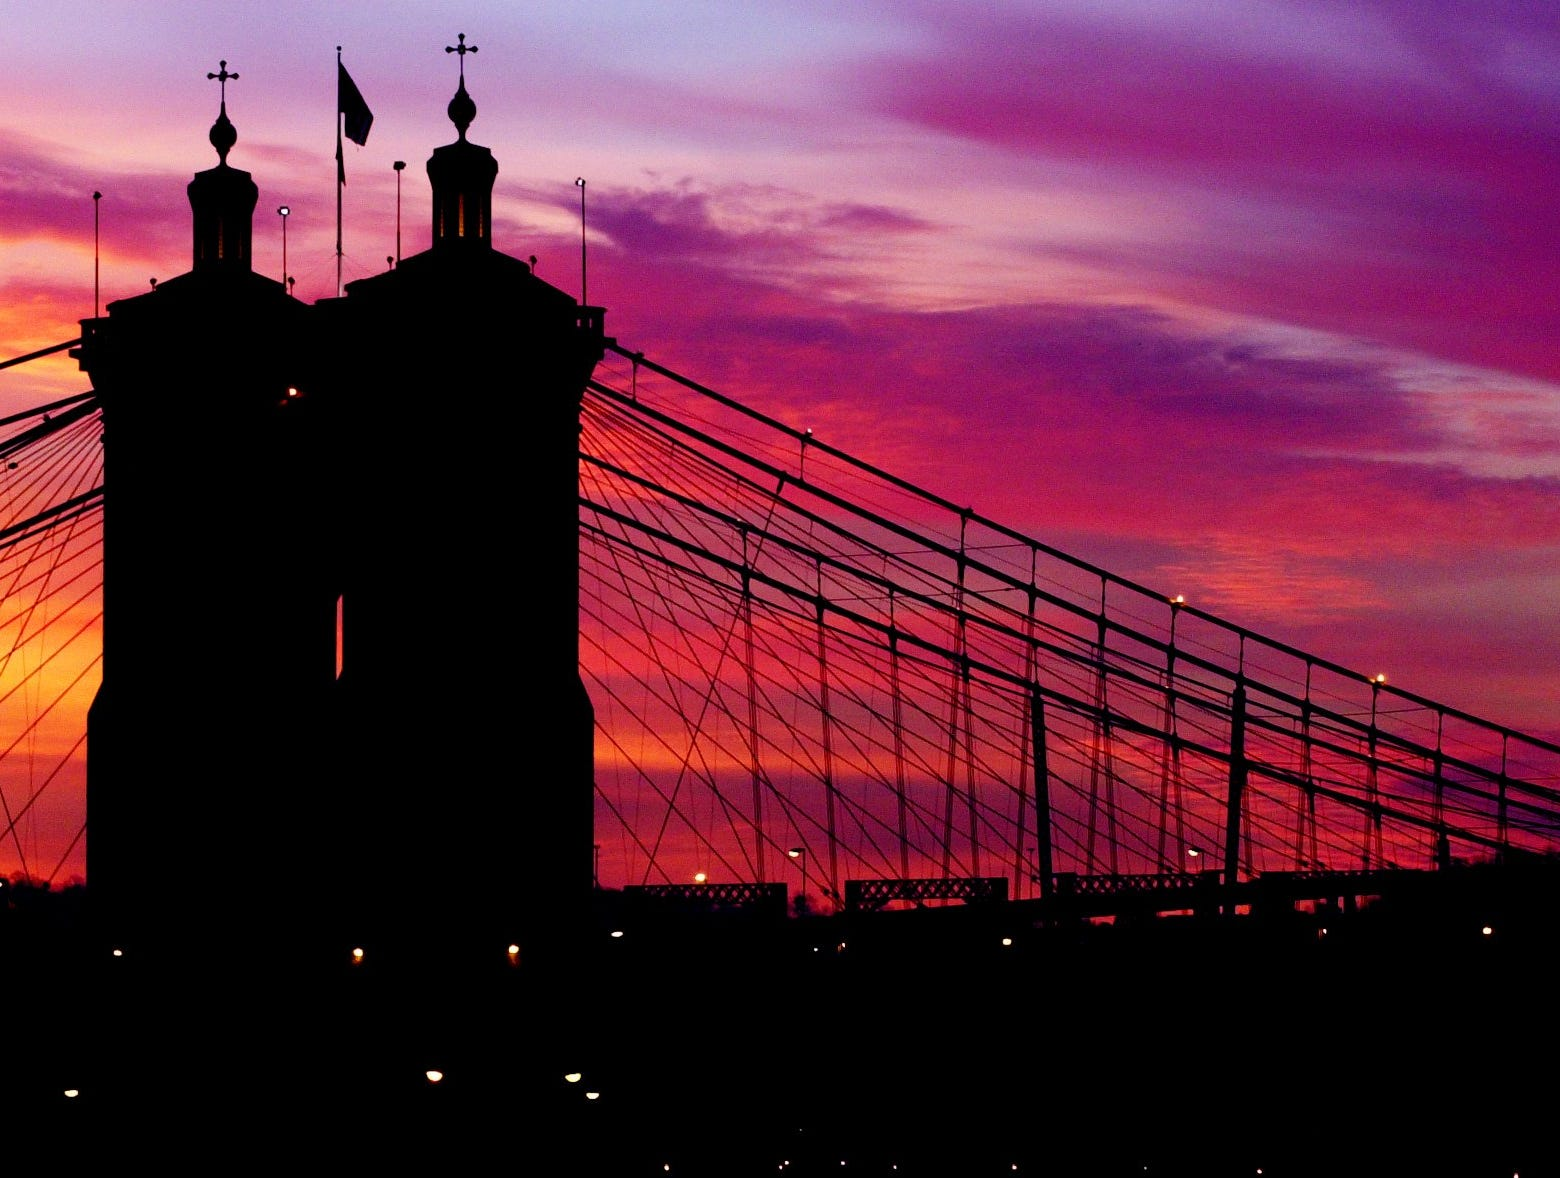 2002.12.29.12 IMPLOSION METRO: The Roebling Bridge is silhouetted against the sky as the sun rises just before Cinergy Field was imploded Sunday December 29, 2002. The Cincinnati Enquirer / Brandi Stafford .bs.